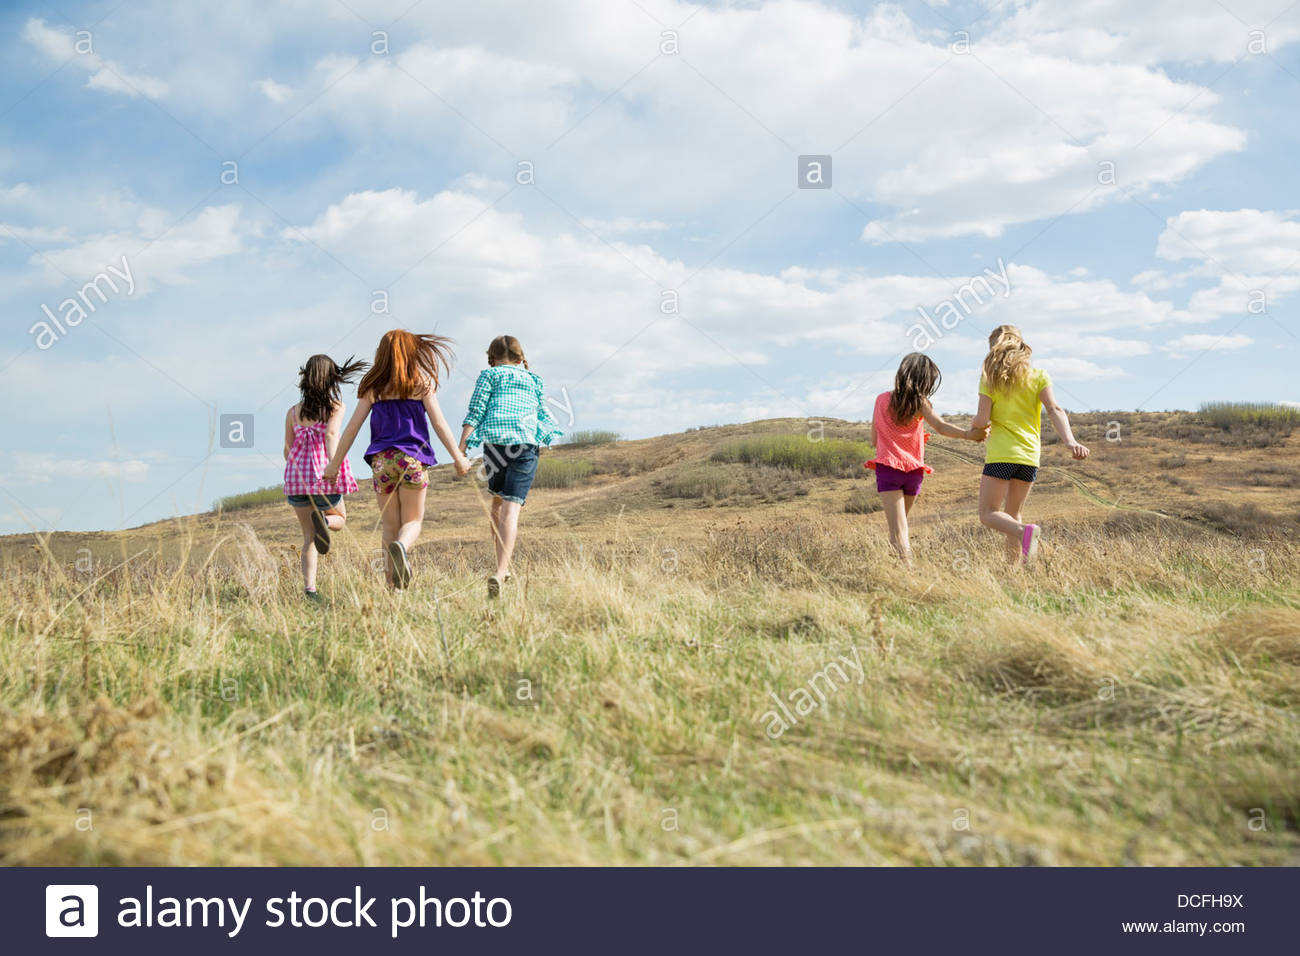 Rear view of girls walking outdoors - Stock Image